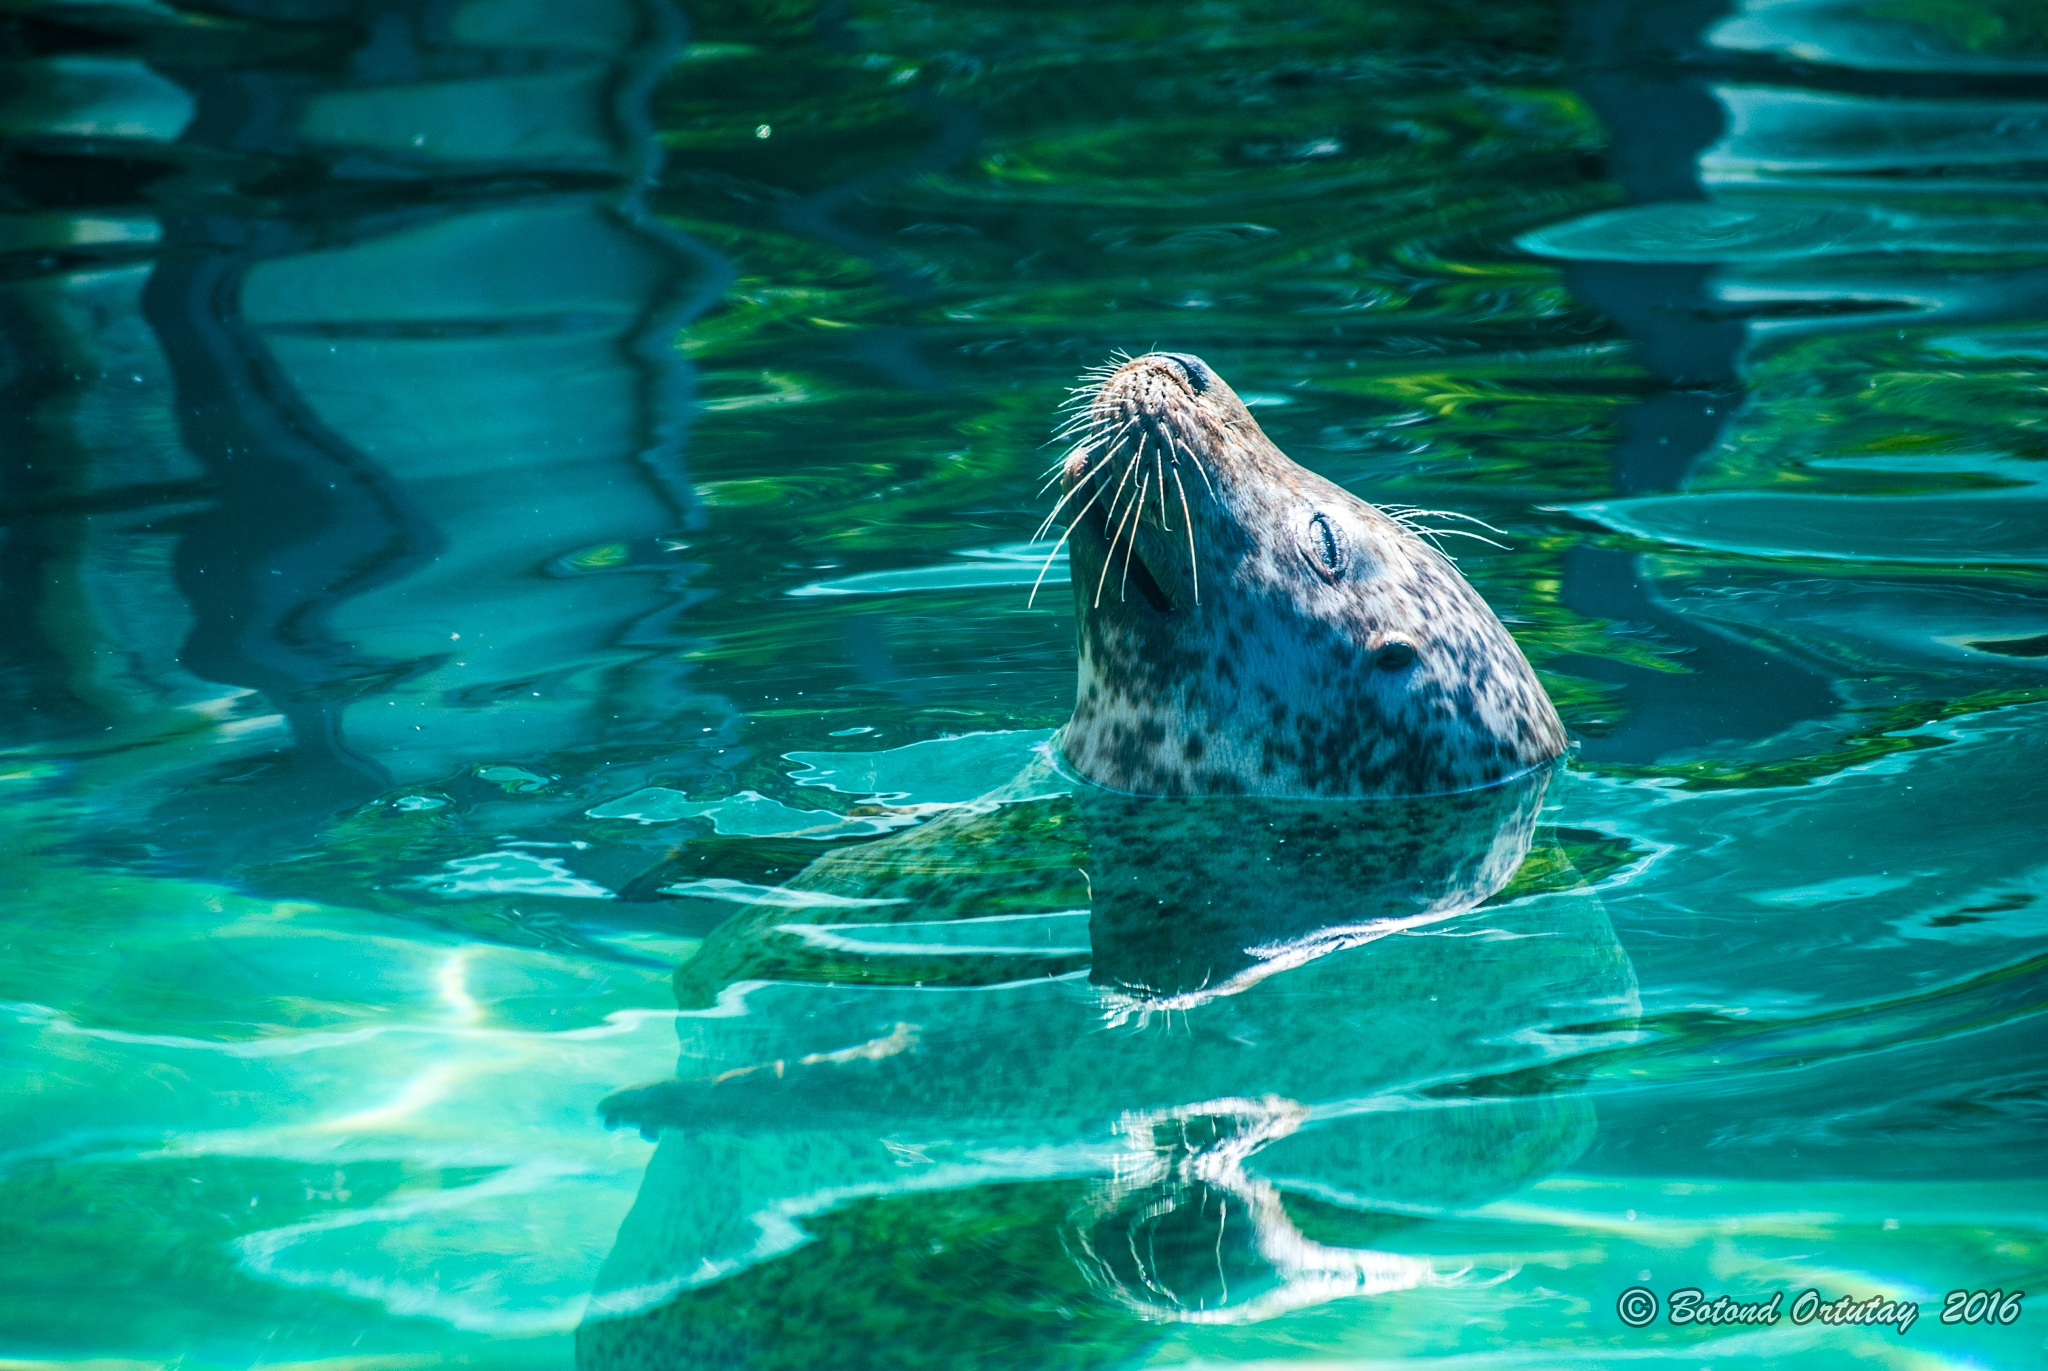 Seal 2 by Botond Ortutay